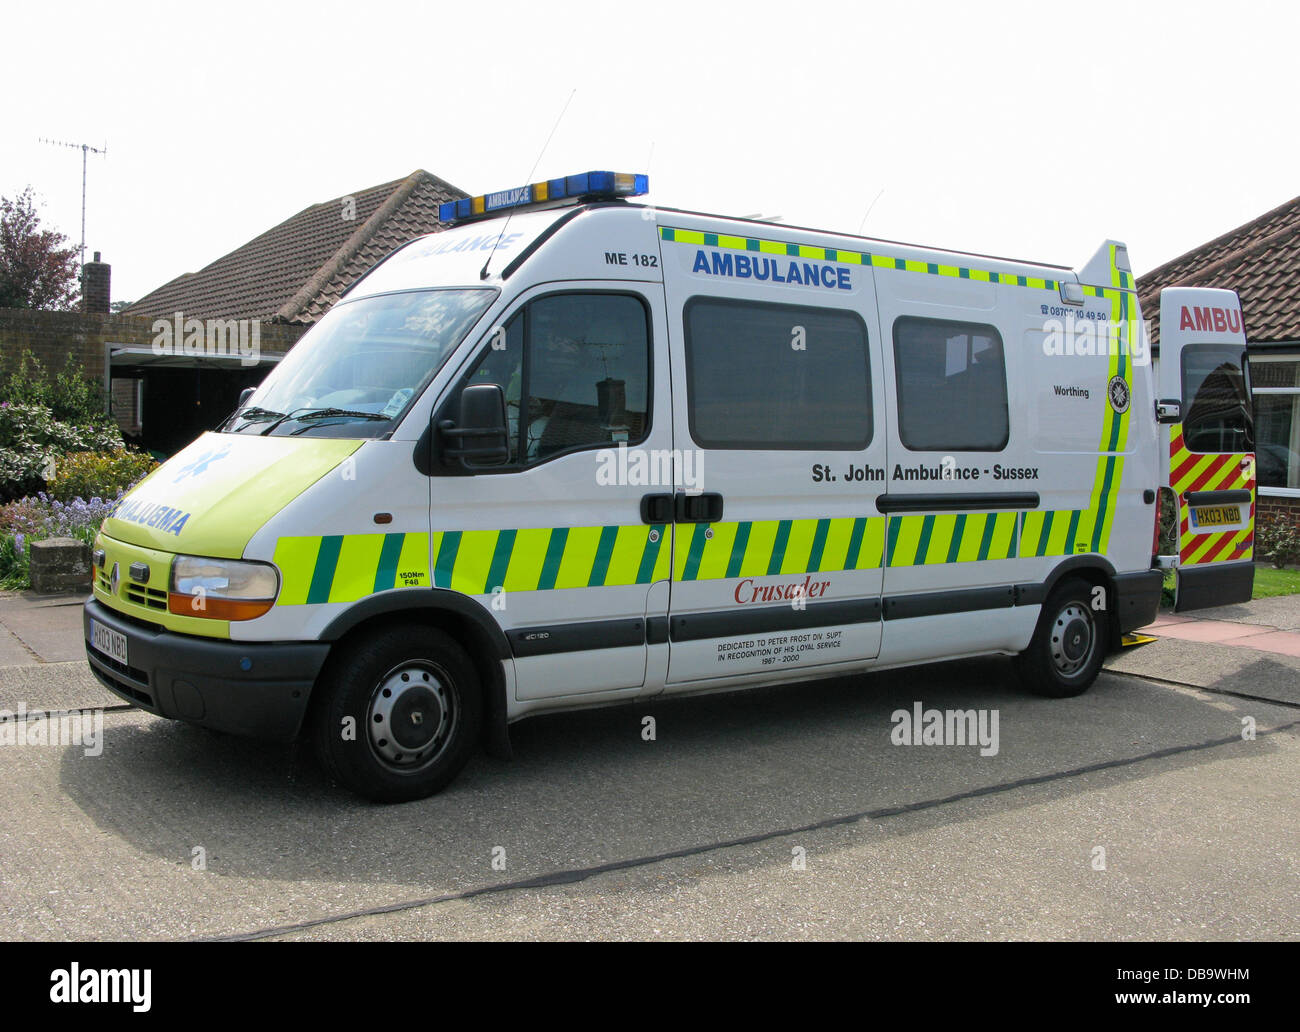 A St John Ambulance Service patient transport vehicle on call waiting for a patient to embark or collect - Stock Image